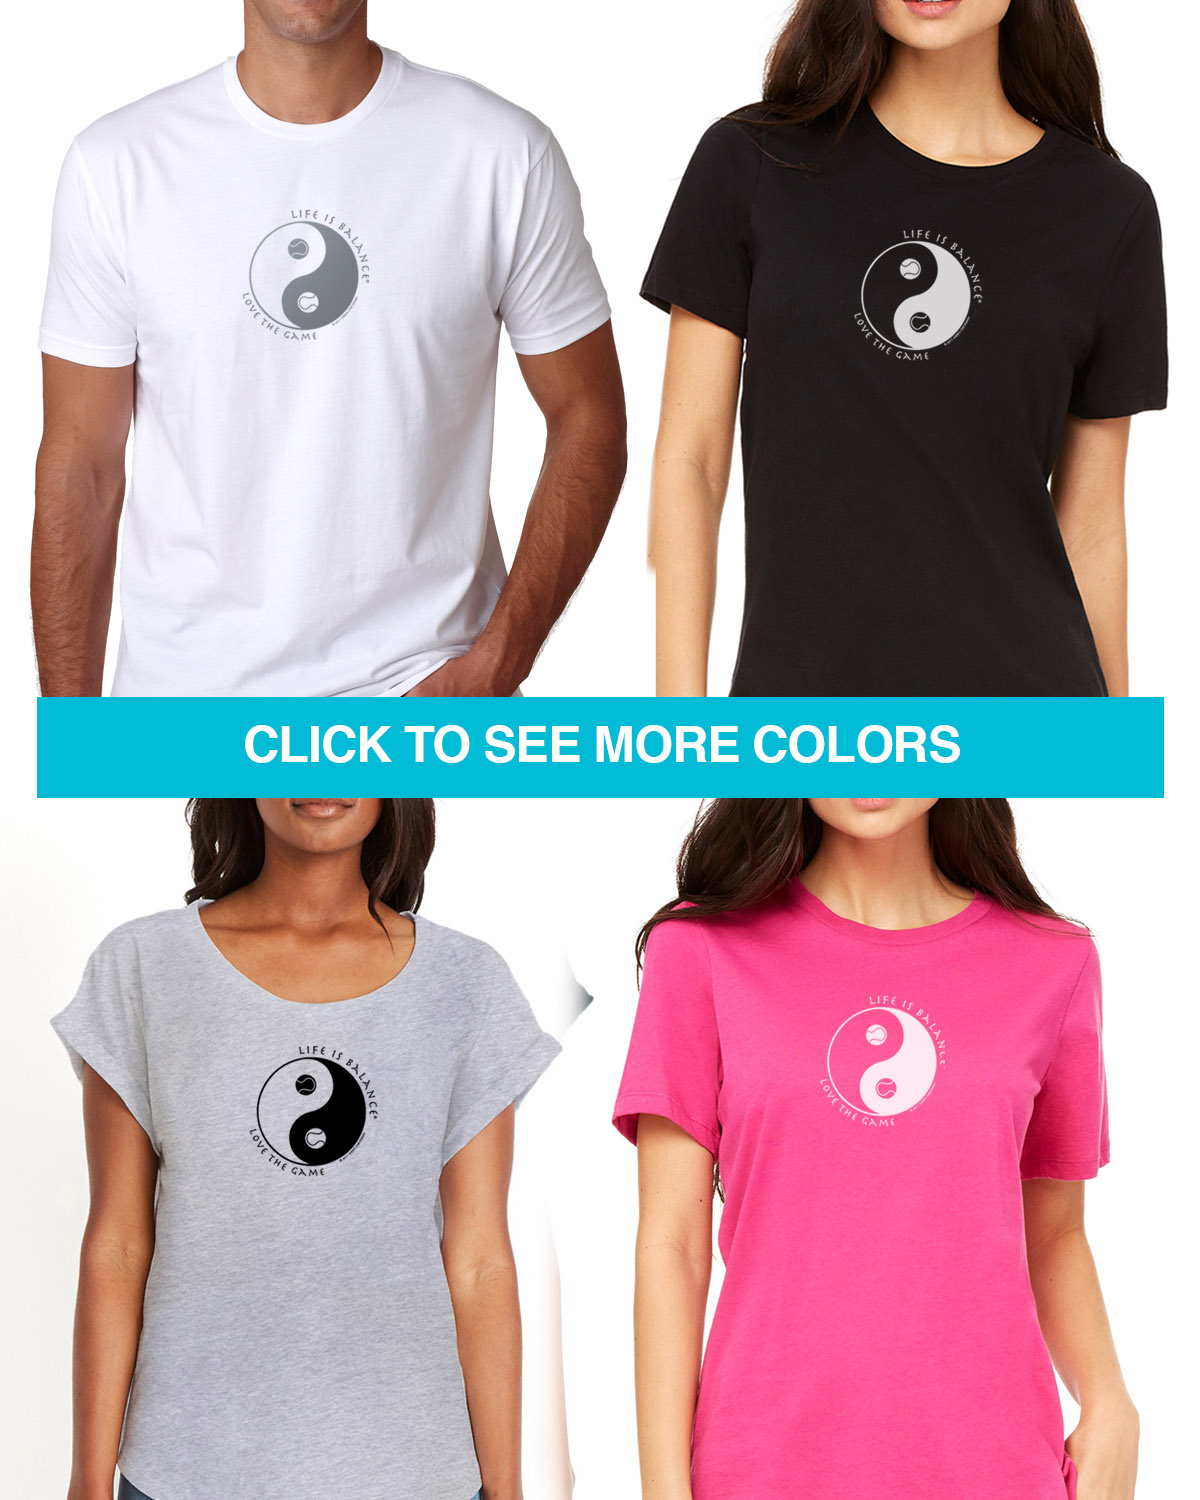 Short sleeve tennis t-shirts for Men and Women. Women's fitted styles and a unisex style for men and women